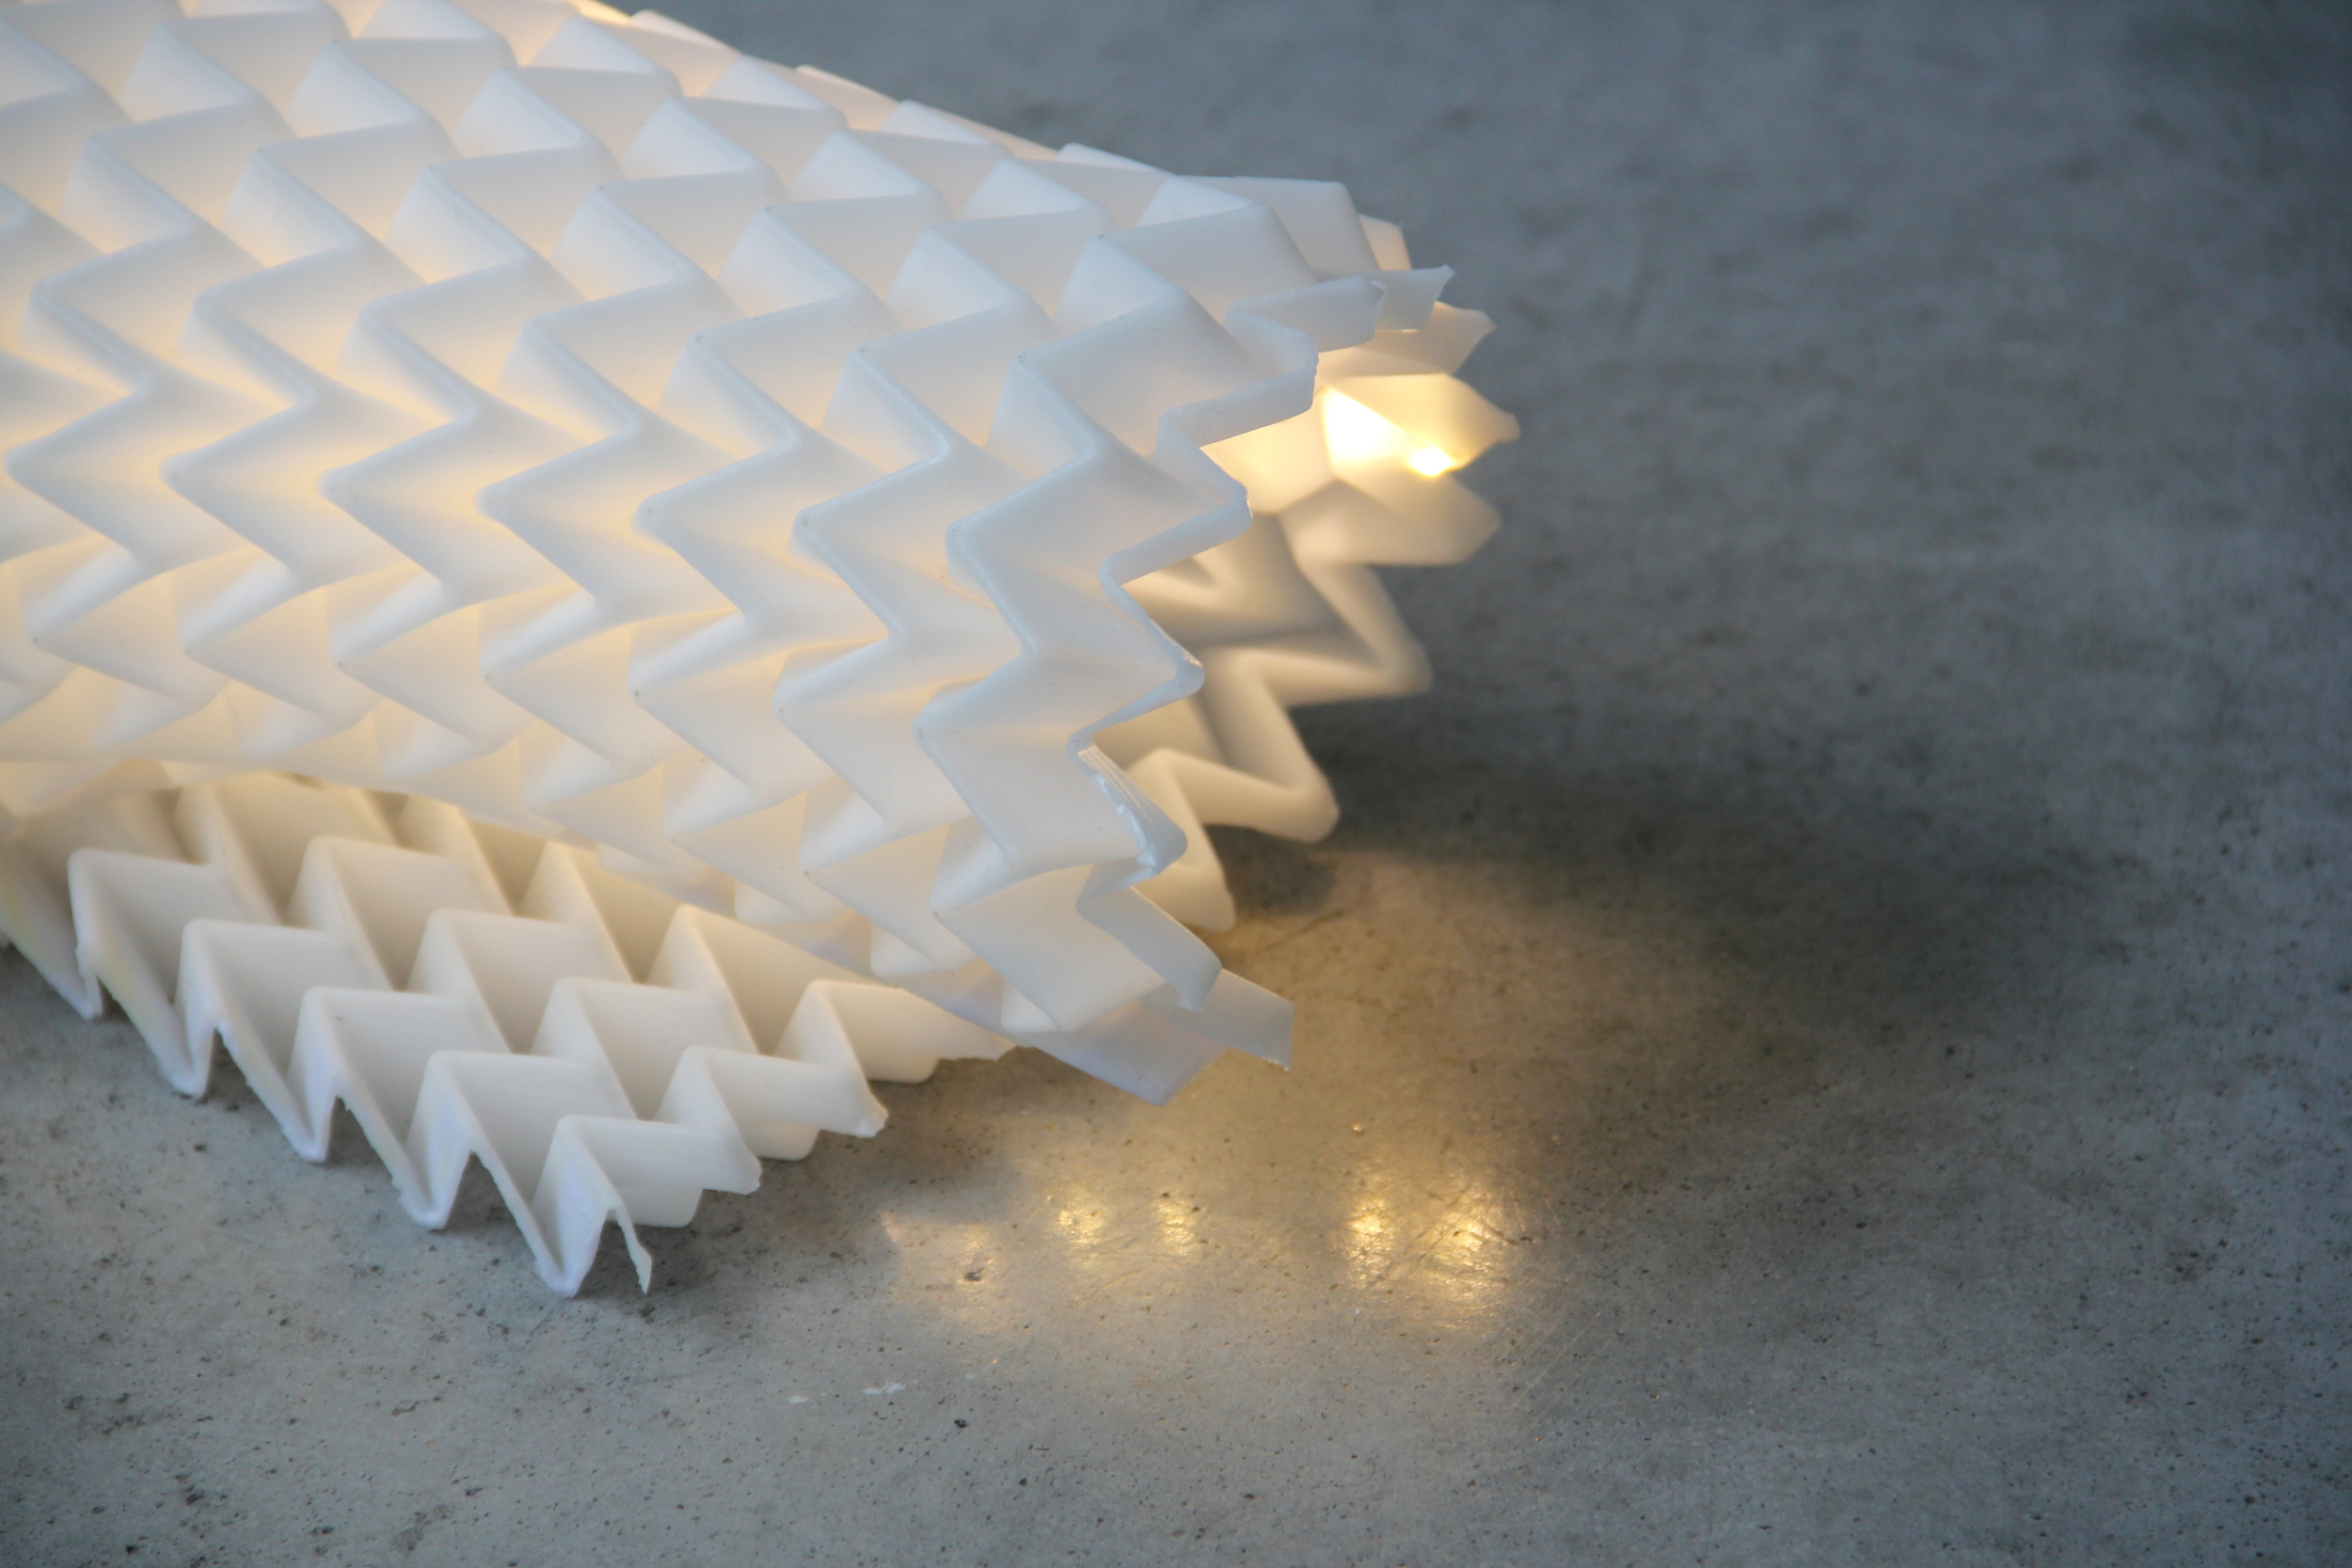 A research study in molding electronics and lights into the flexible orimetric structure.